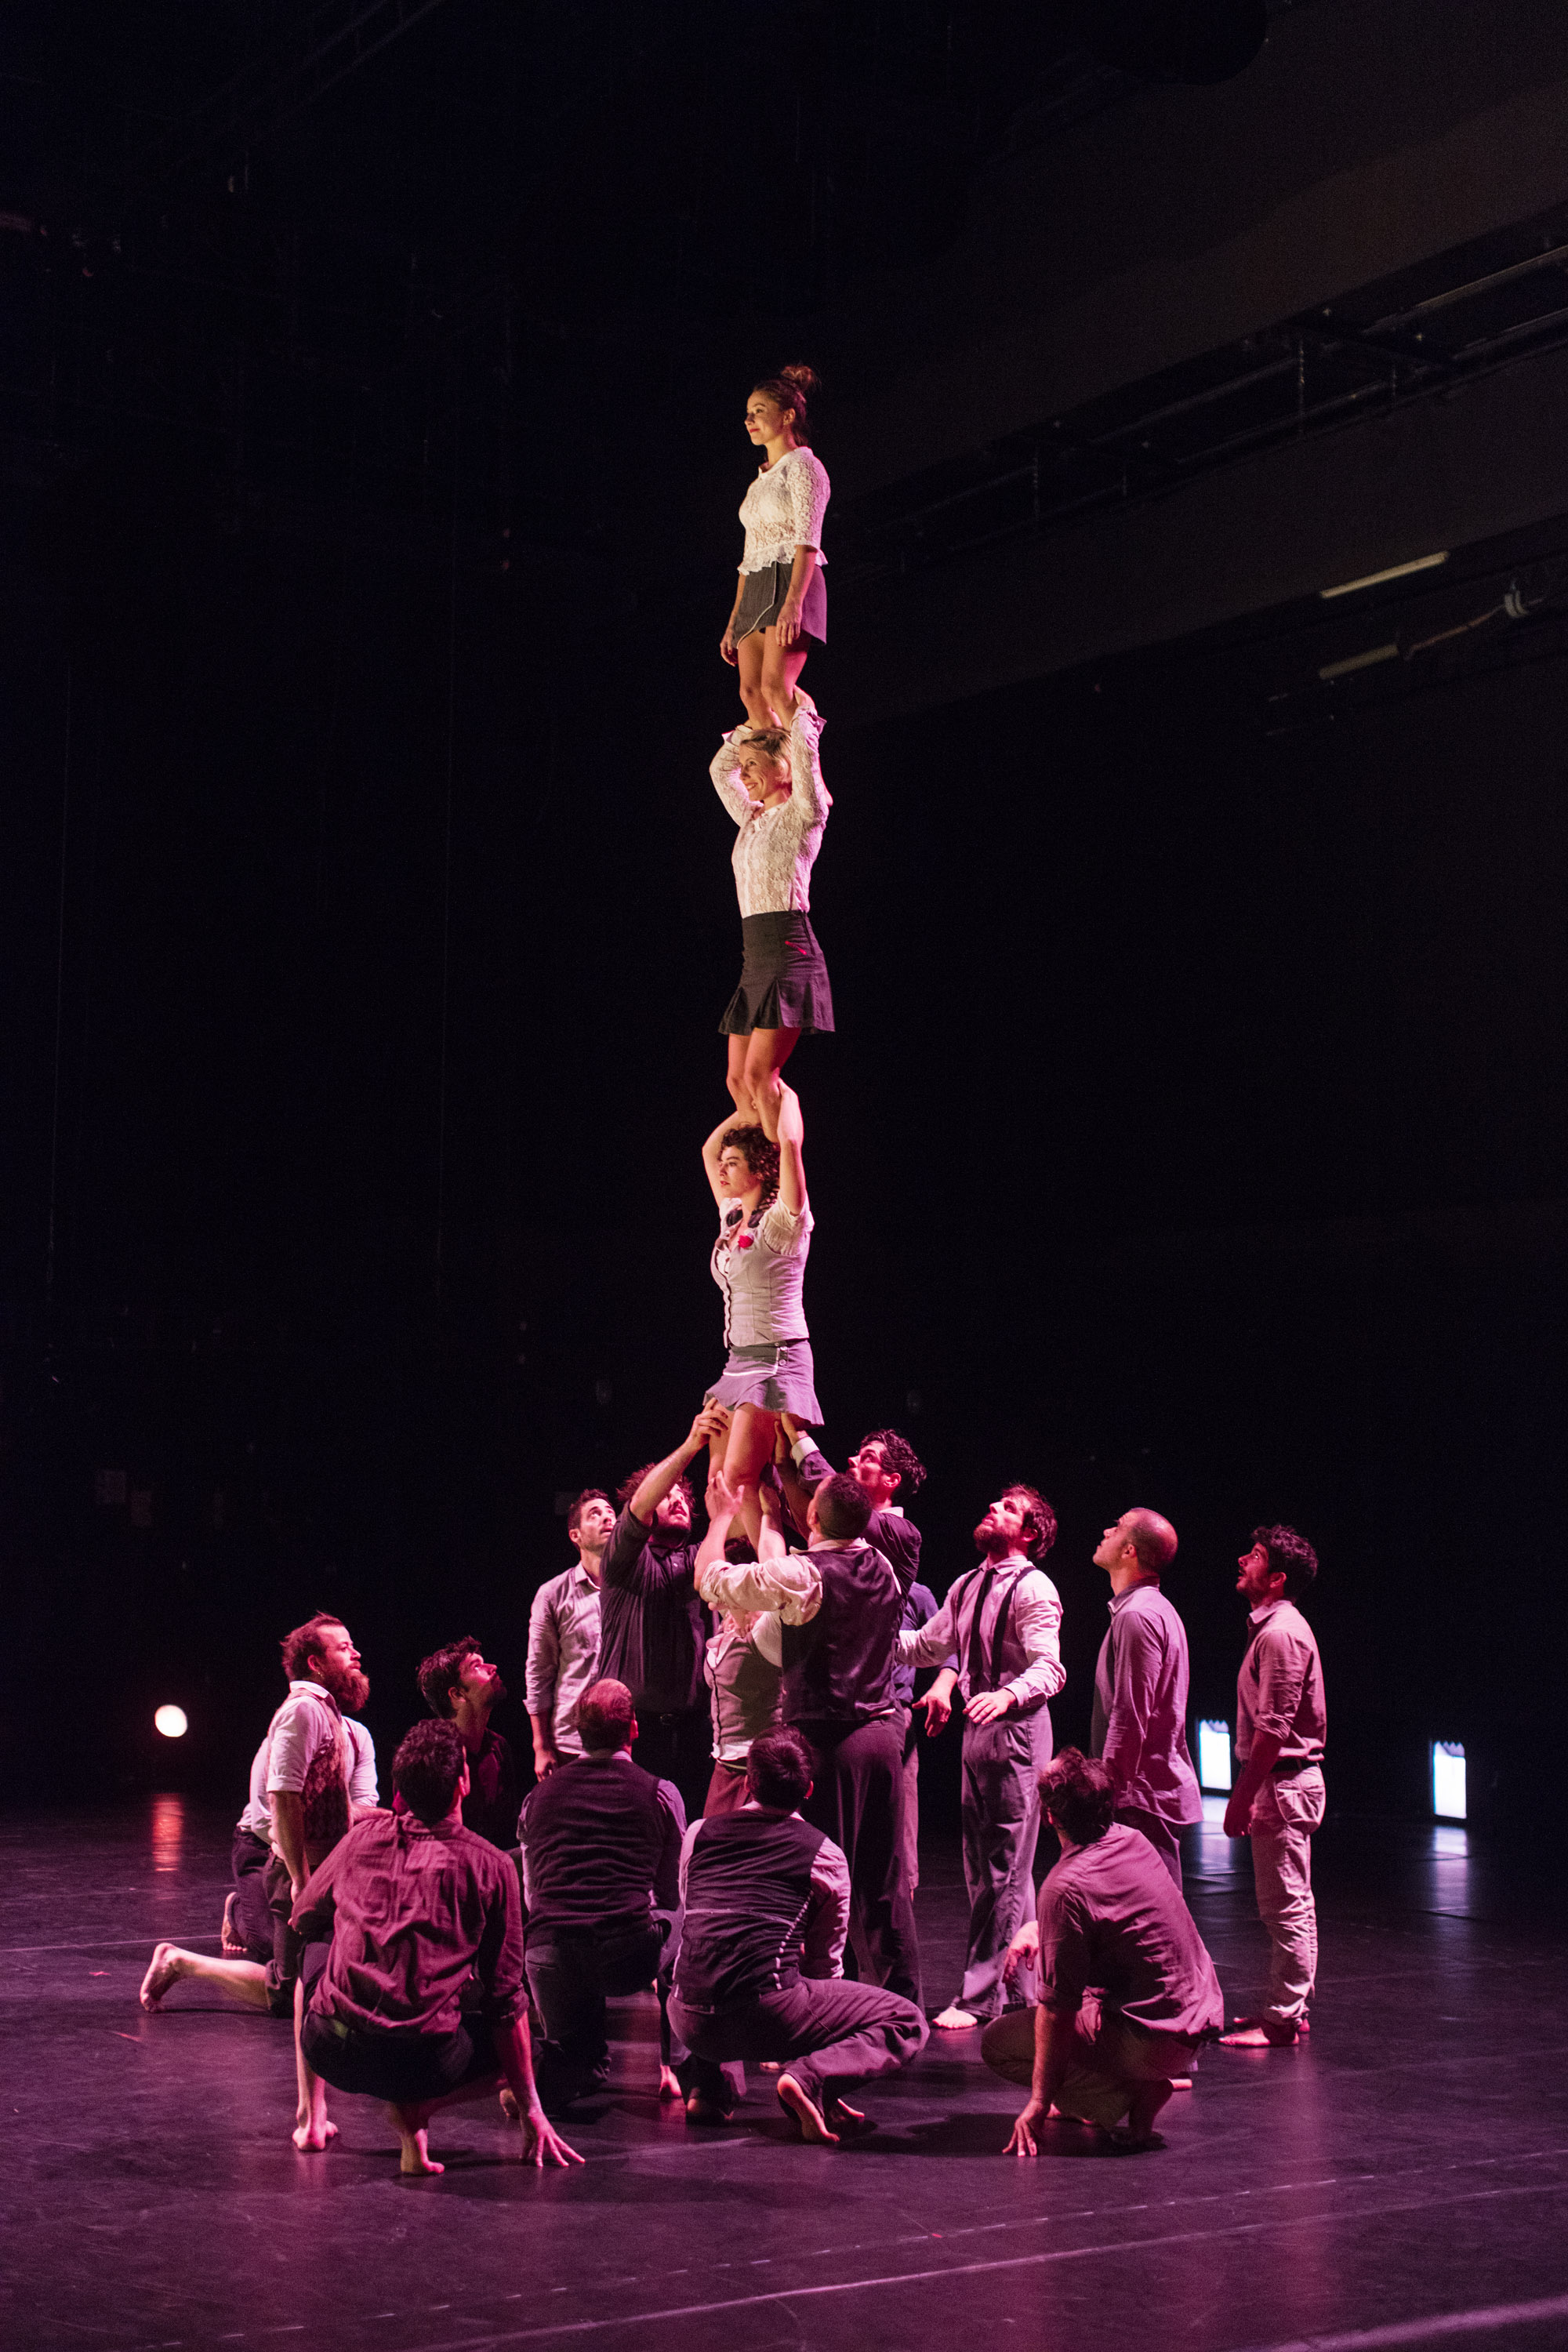 Compagnie XY in performance. Photo: David Levene